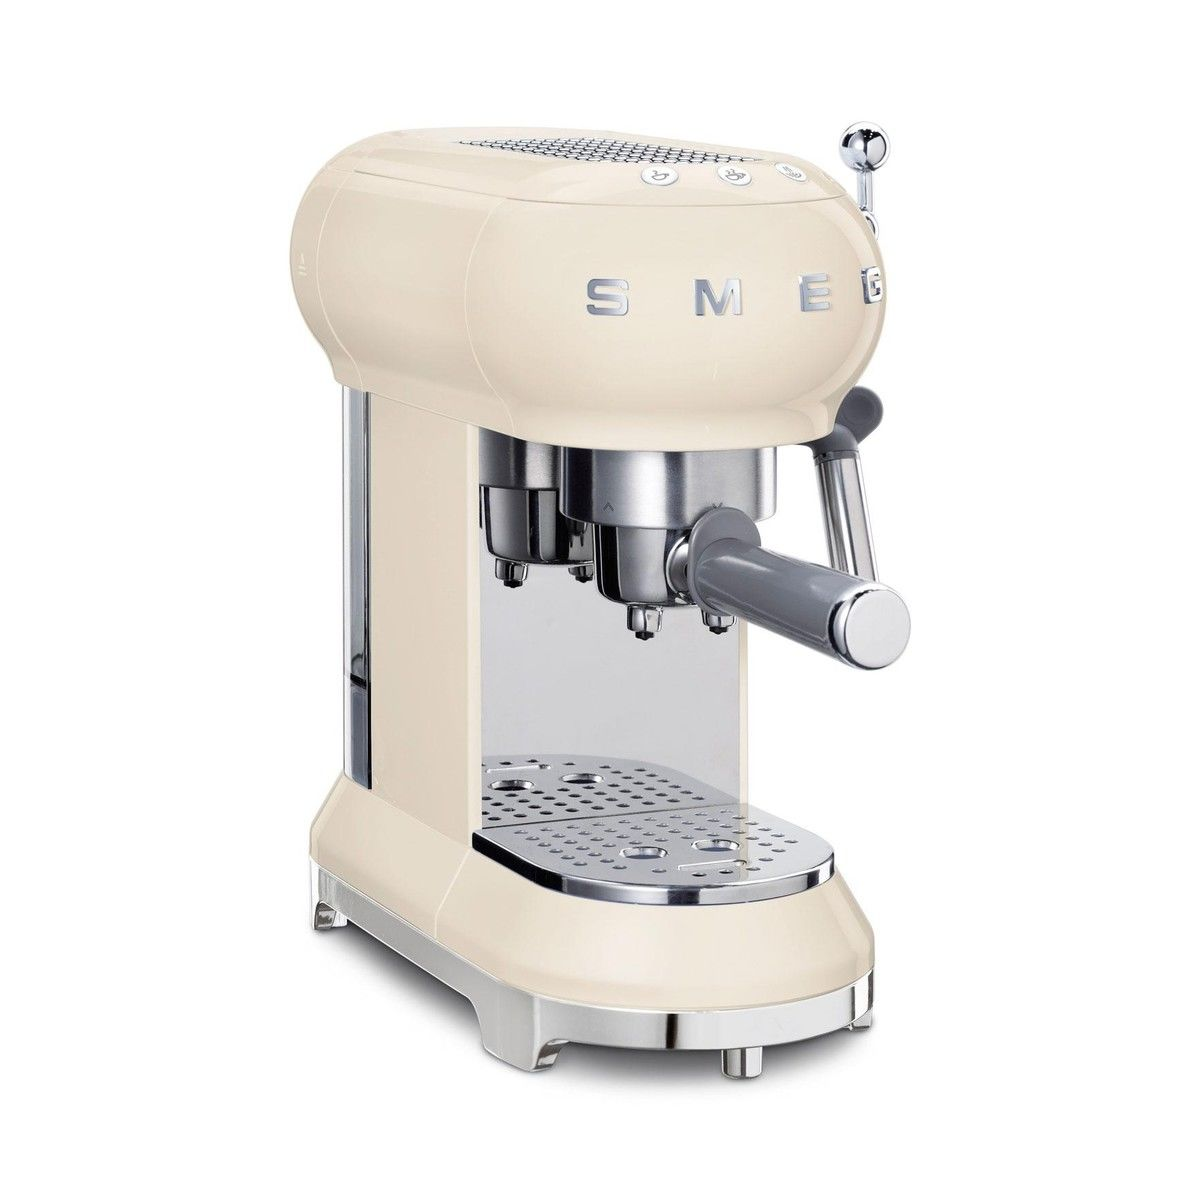 ECF01 Espresso Coffee Maker Smeg AmbienteDirectcom